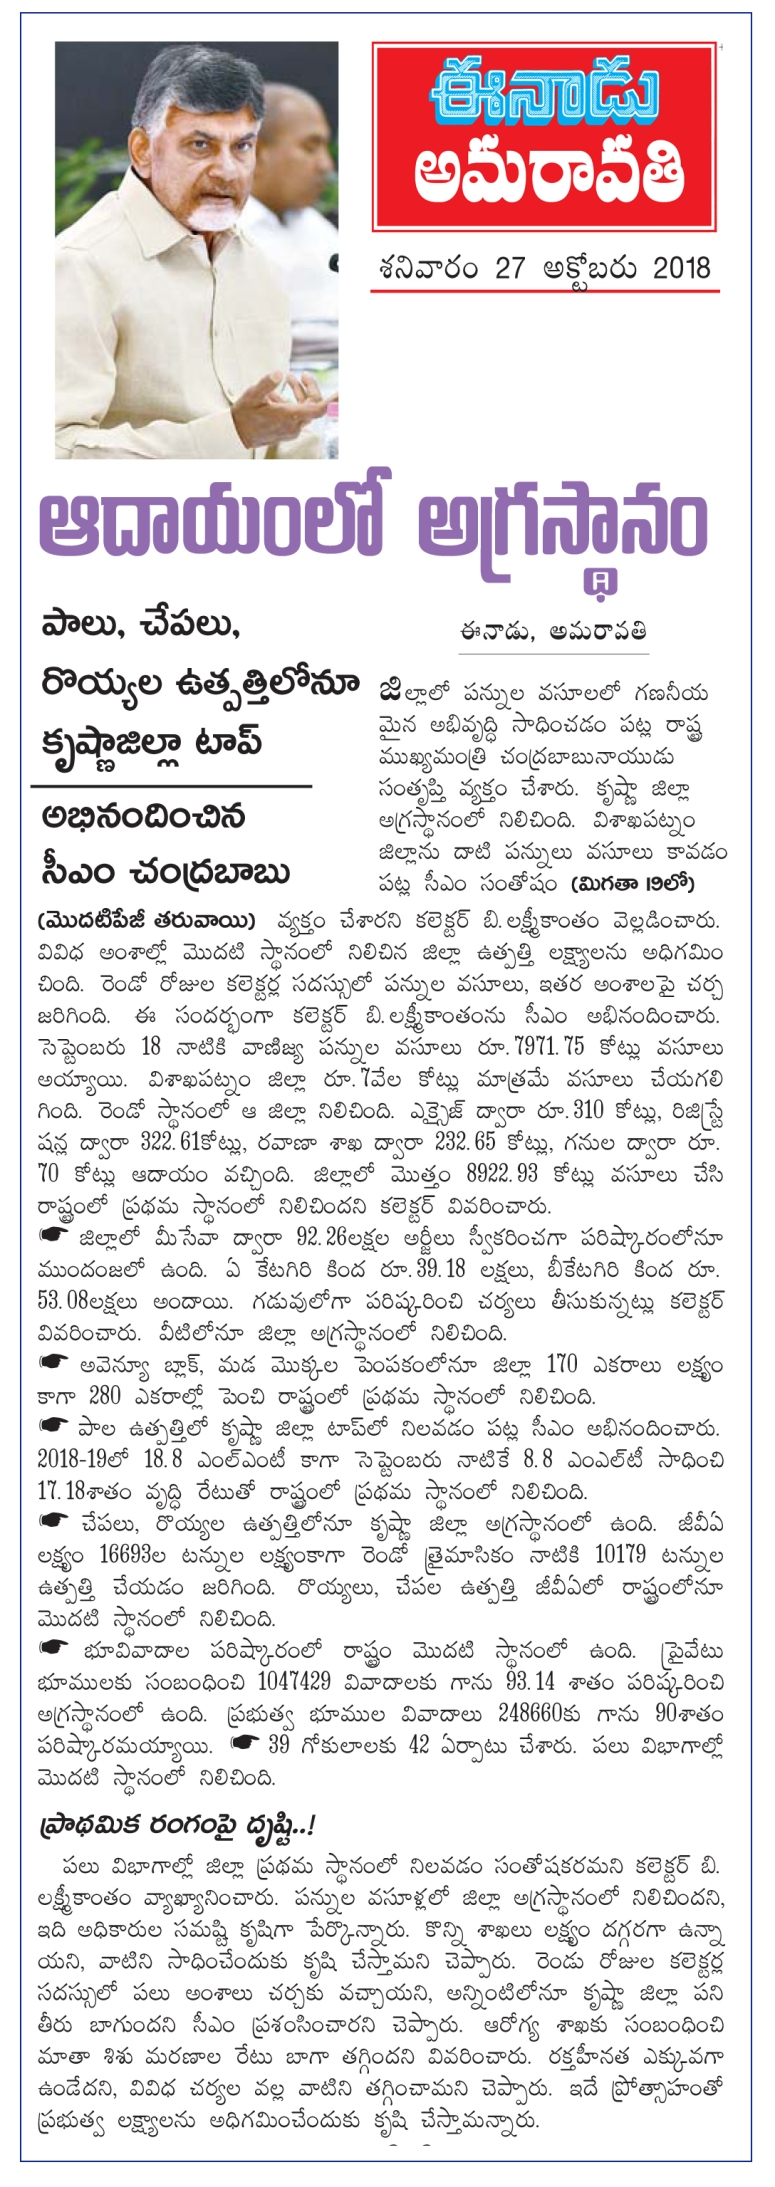 Krishna Dist 1st in Income Eenadu VJA 27-Oct-2018.jpg